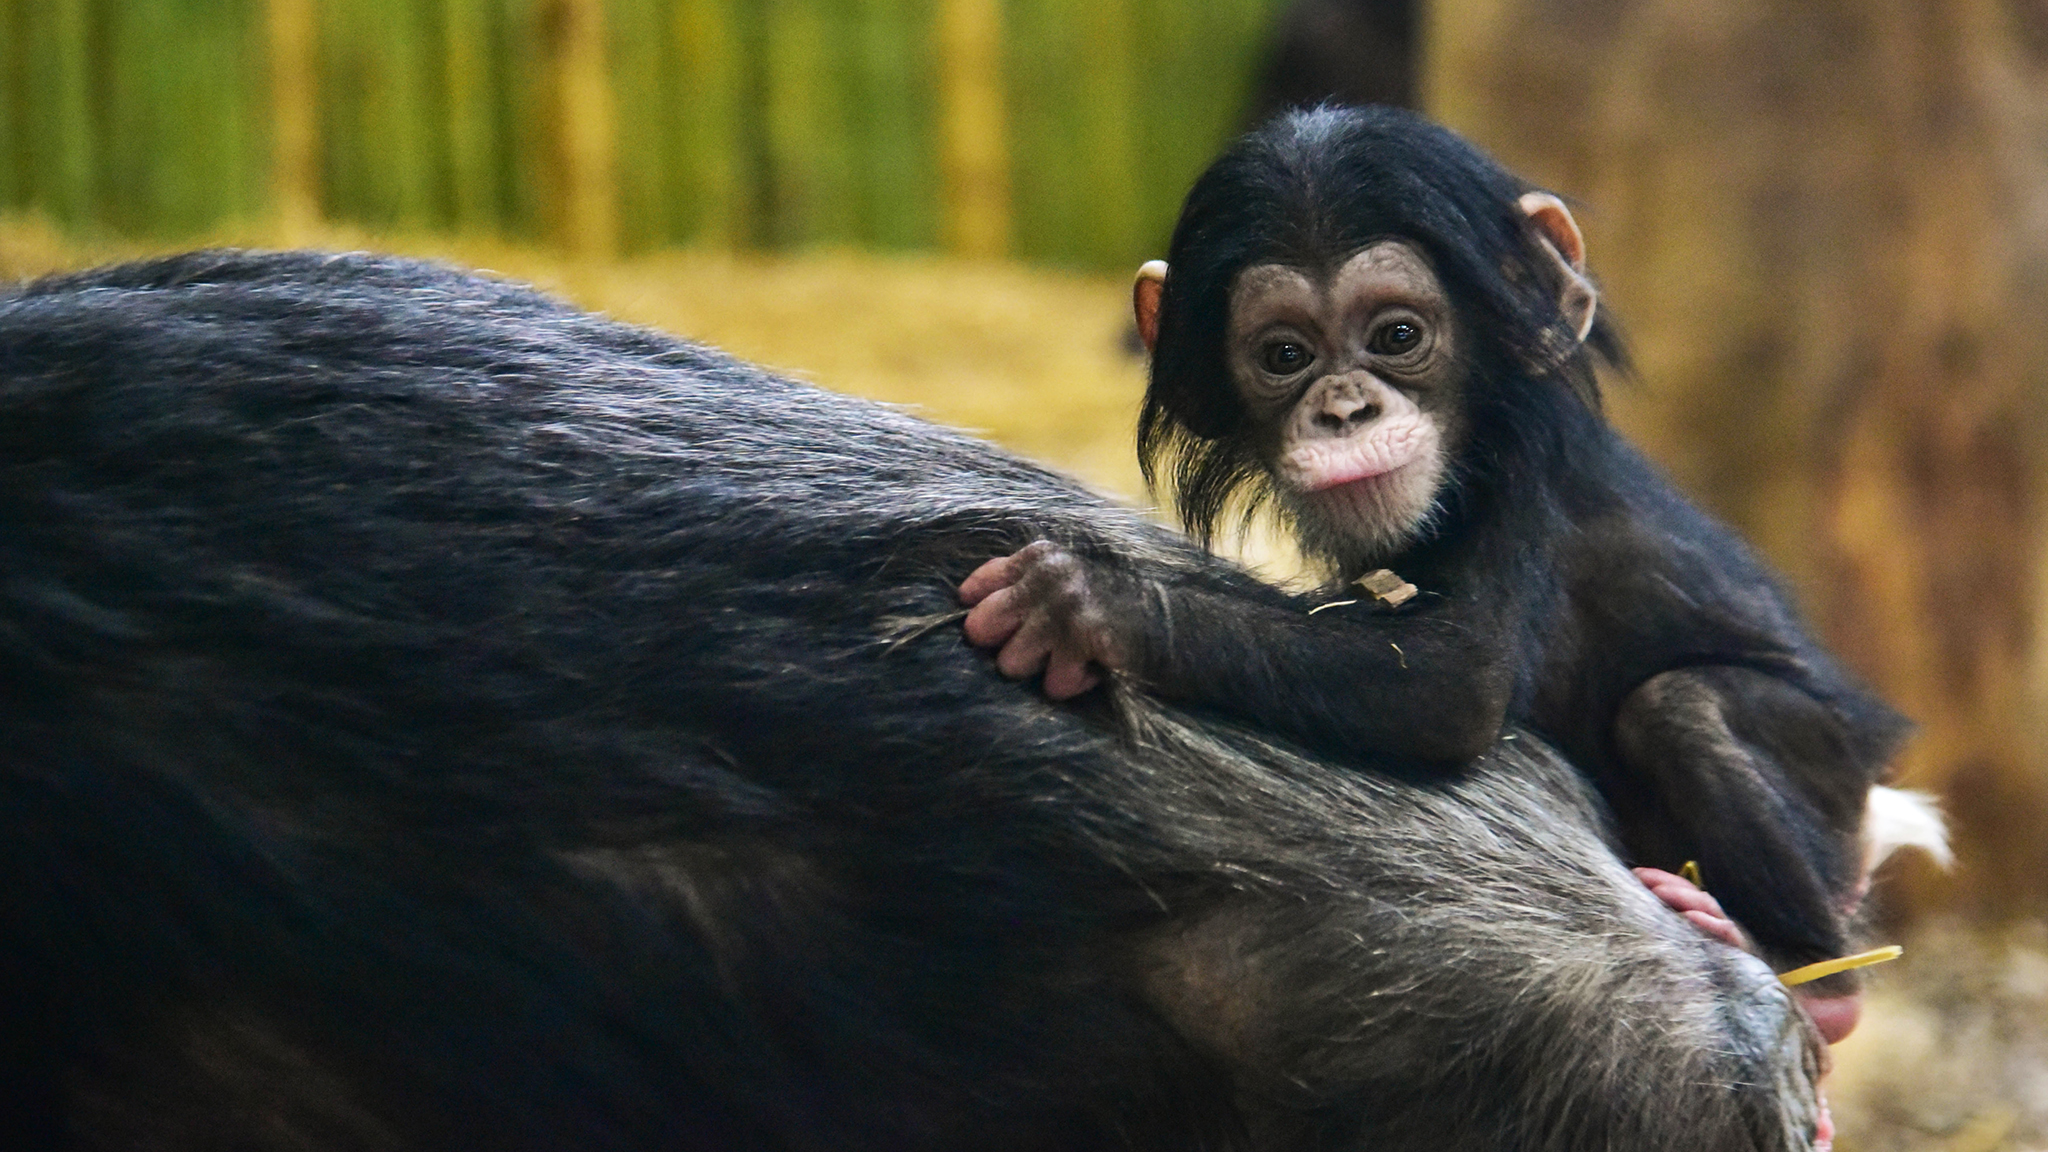 baby chimpanzee clinging to mother's back.